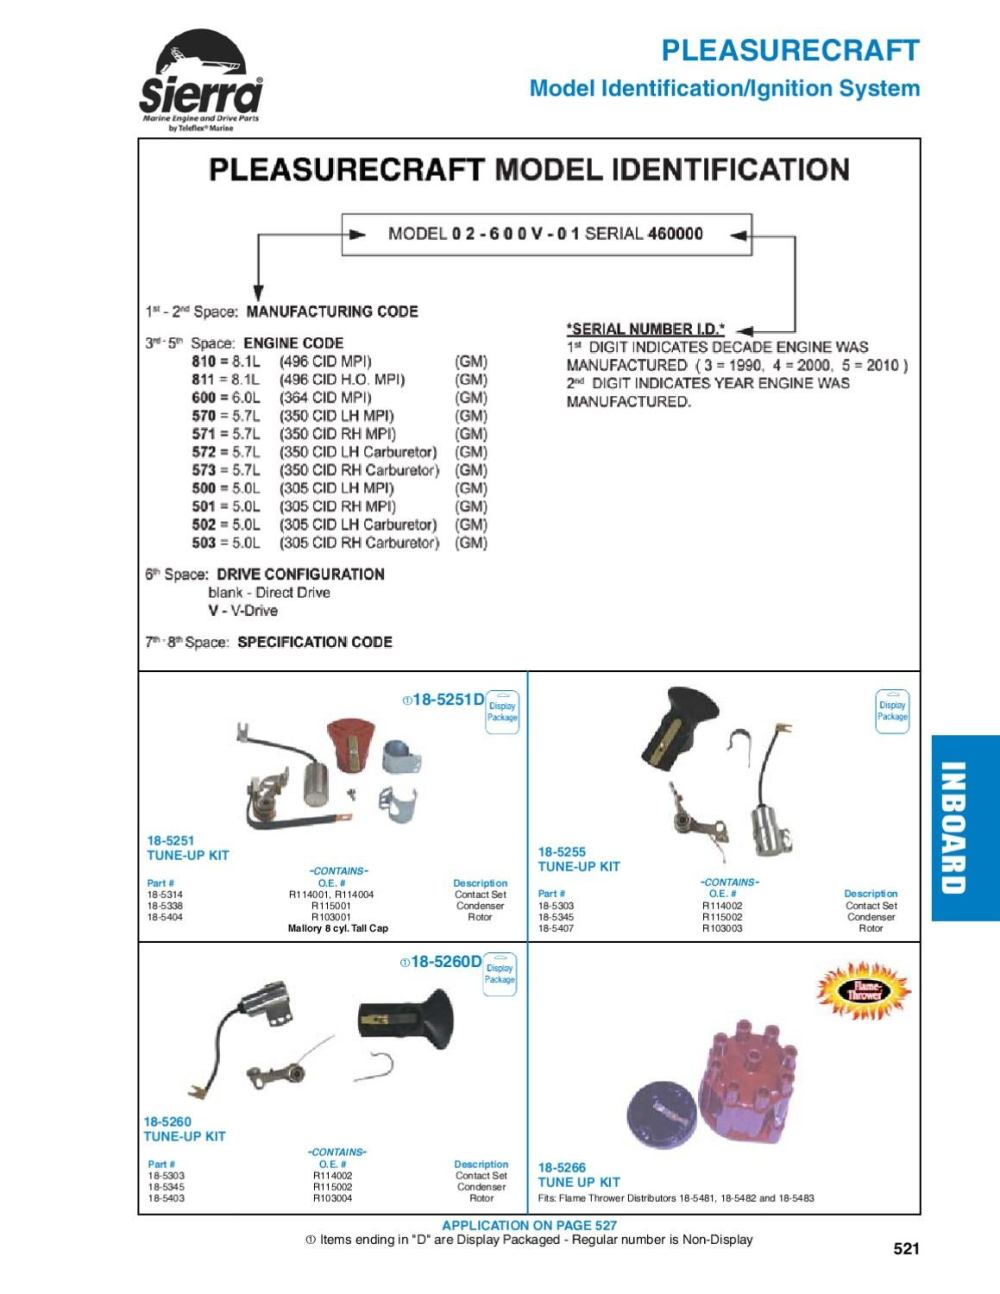 medium resolution of sierra marine engine and drive parts for pleasurecraft by anthea webb issuu